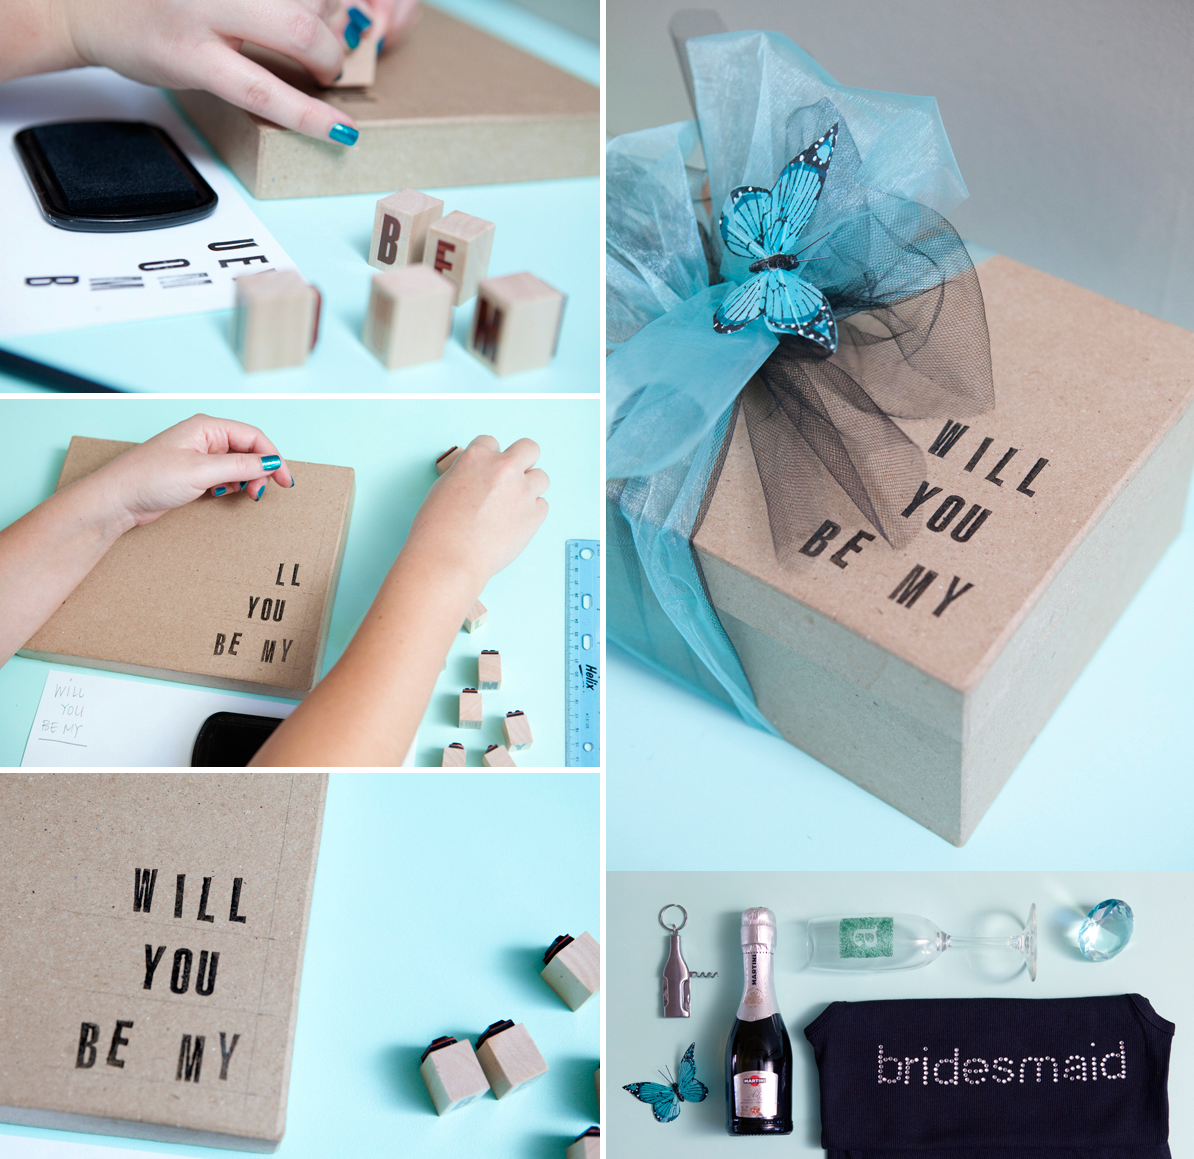 Creative-ways-to-say-will-you-be-my-bridesmaid.original